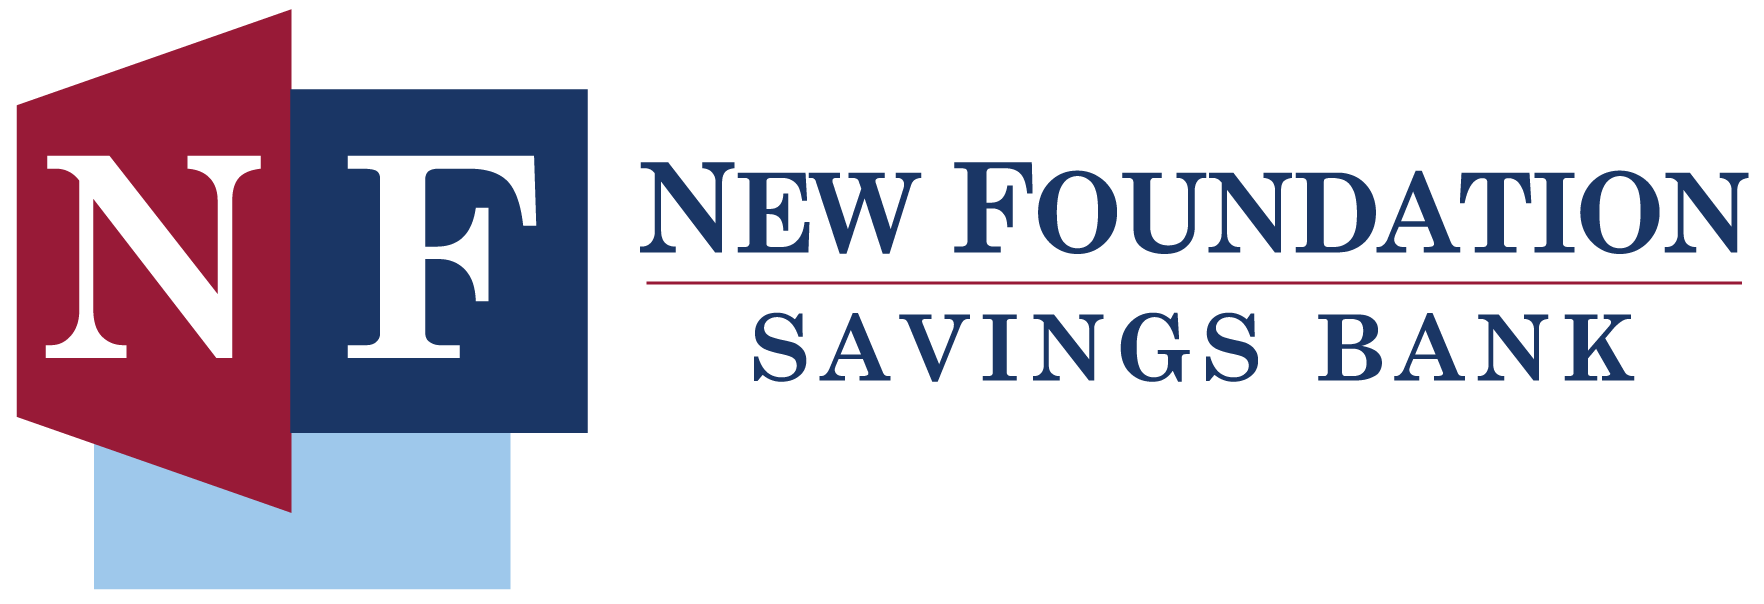 New Foundation Savings Bank Logo